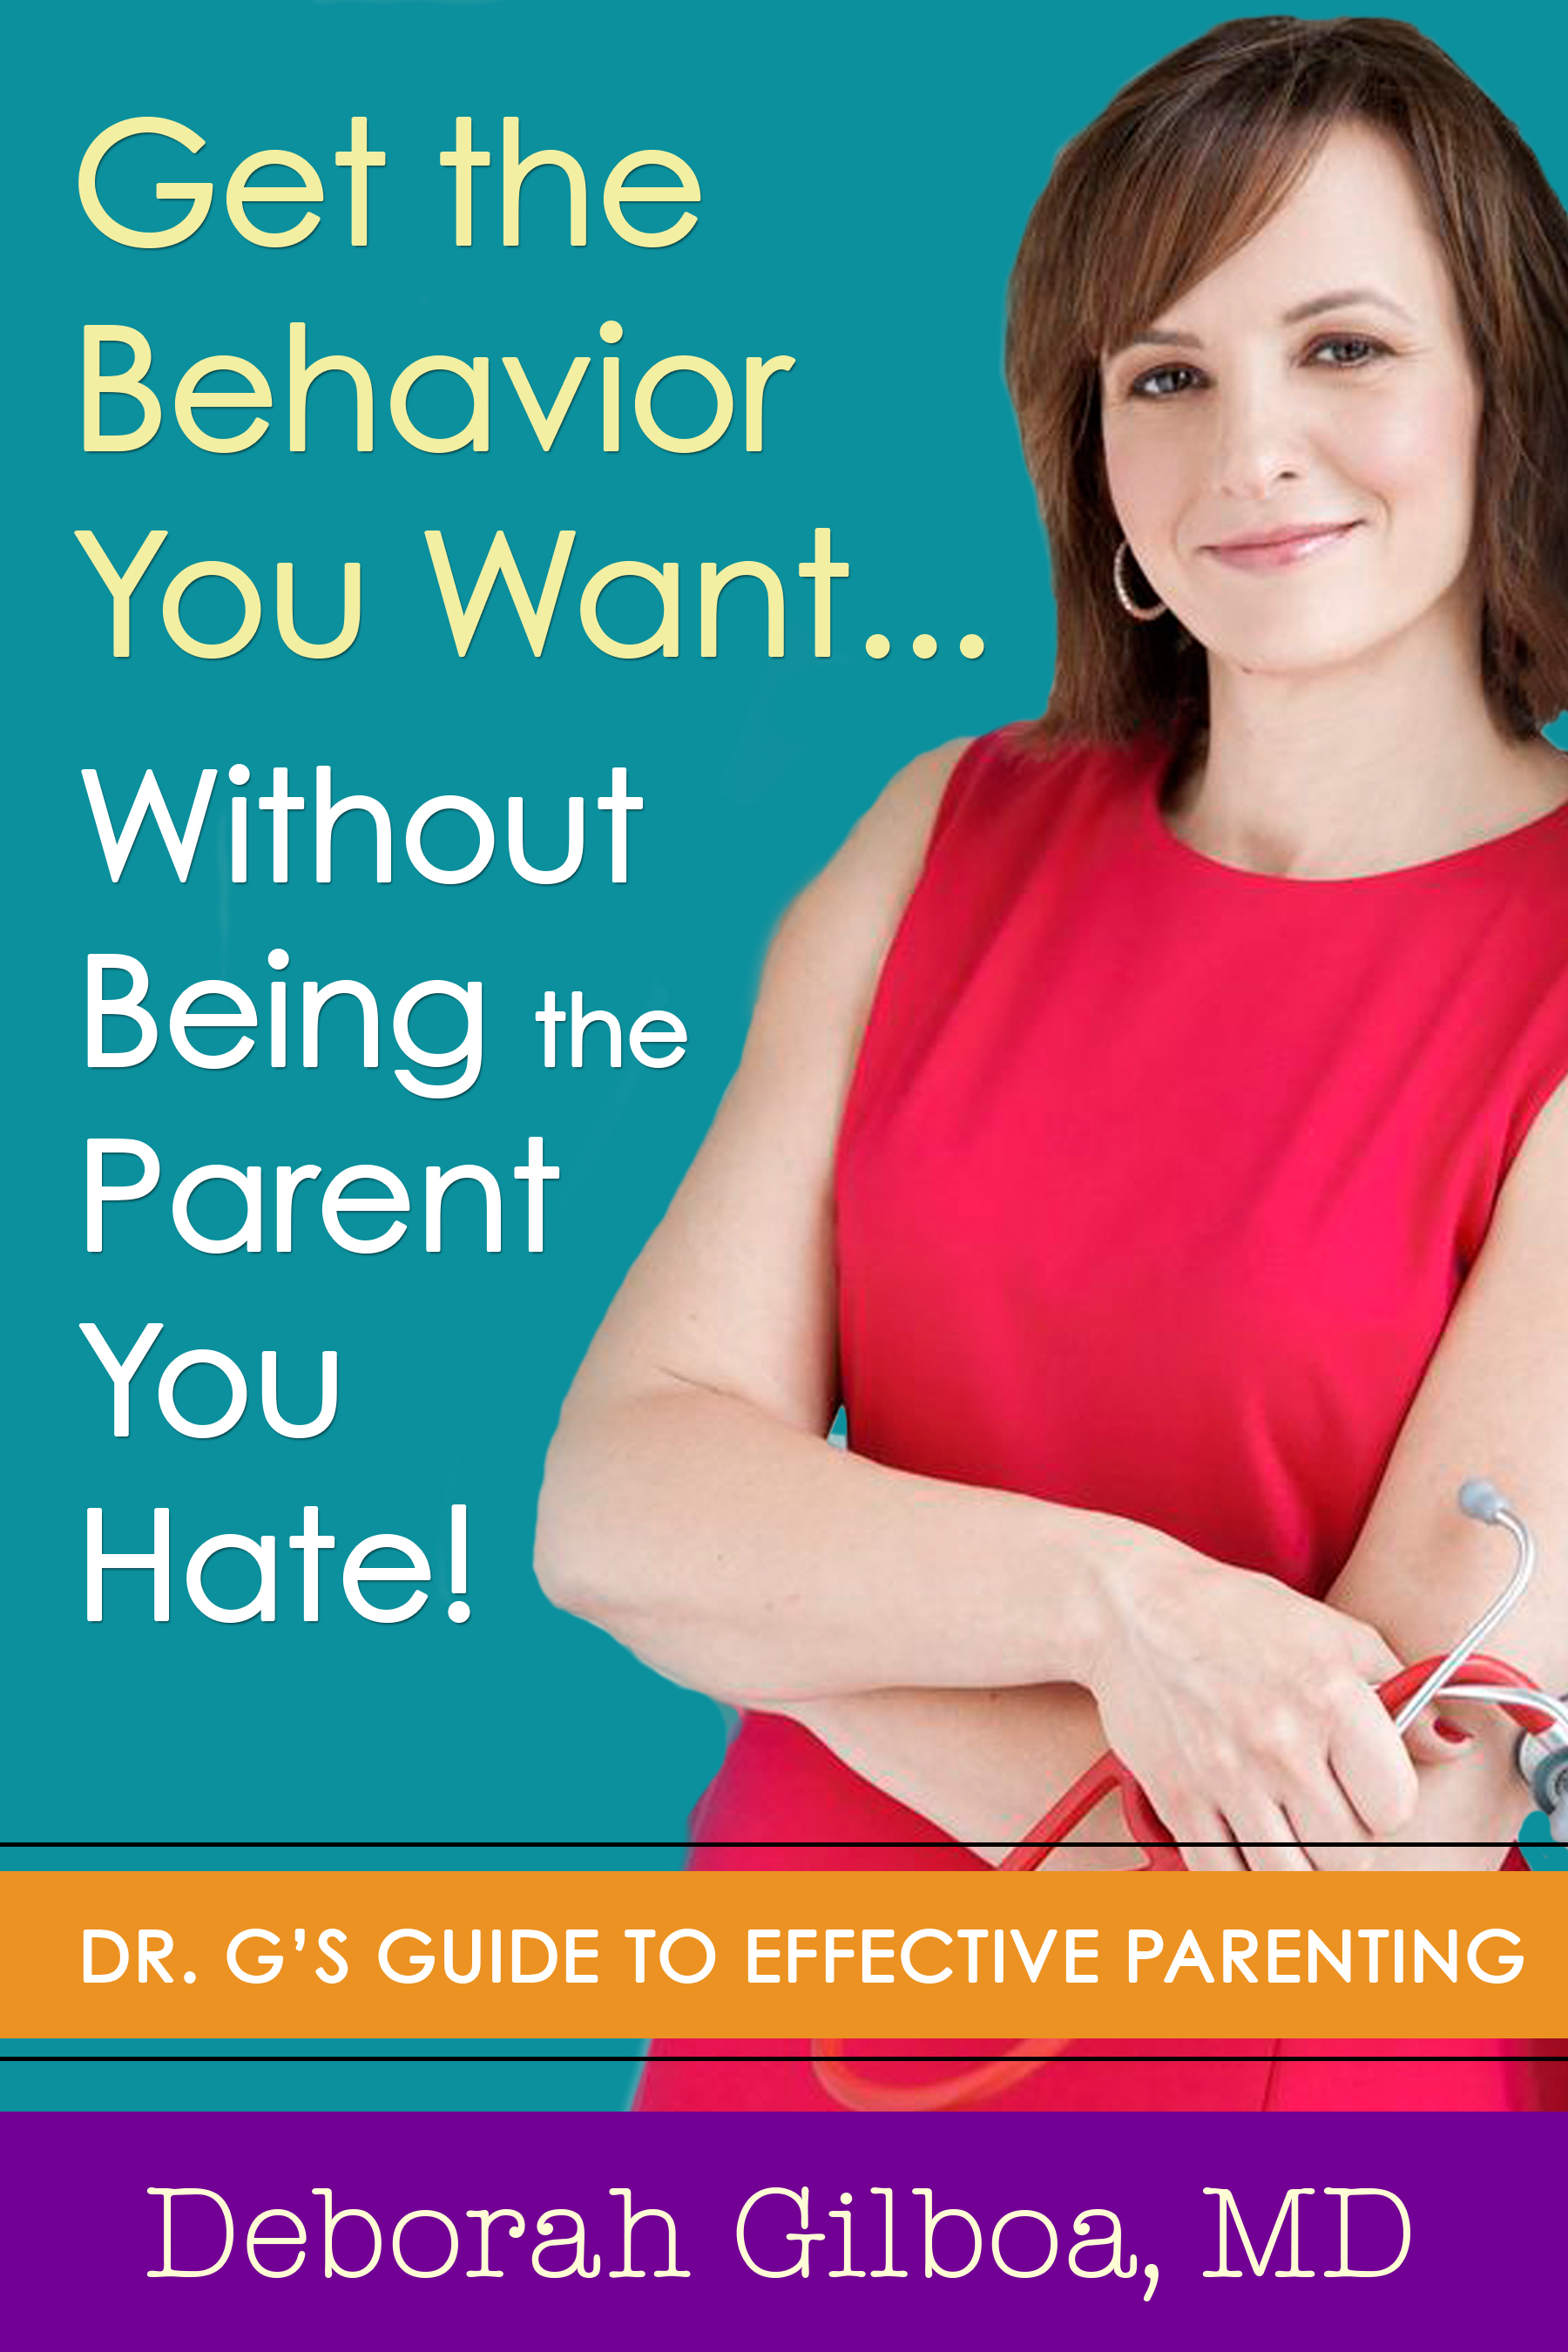 gilboa single parents With gigmasters, you can choose from the best authors in the gilboa, ny area  as a single parent with only $2,000 to her name and no other source of income,.